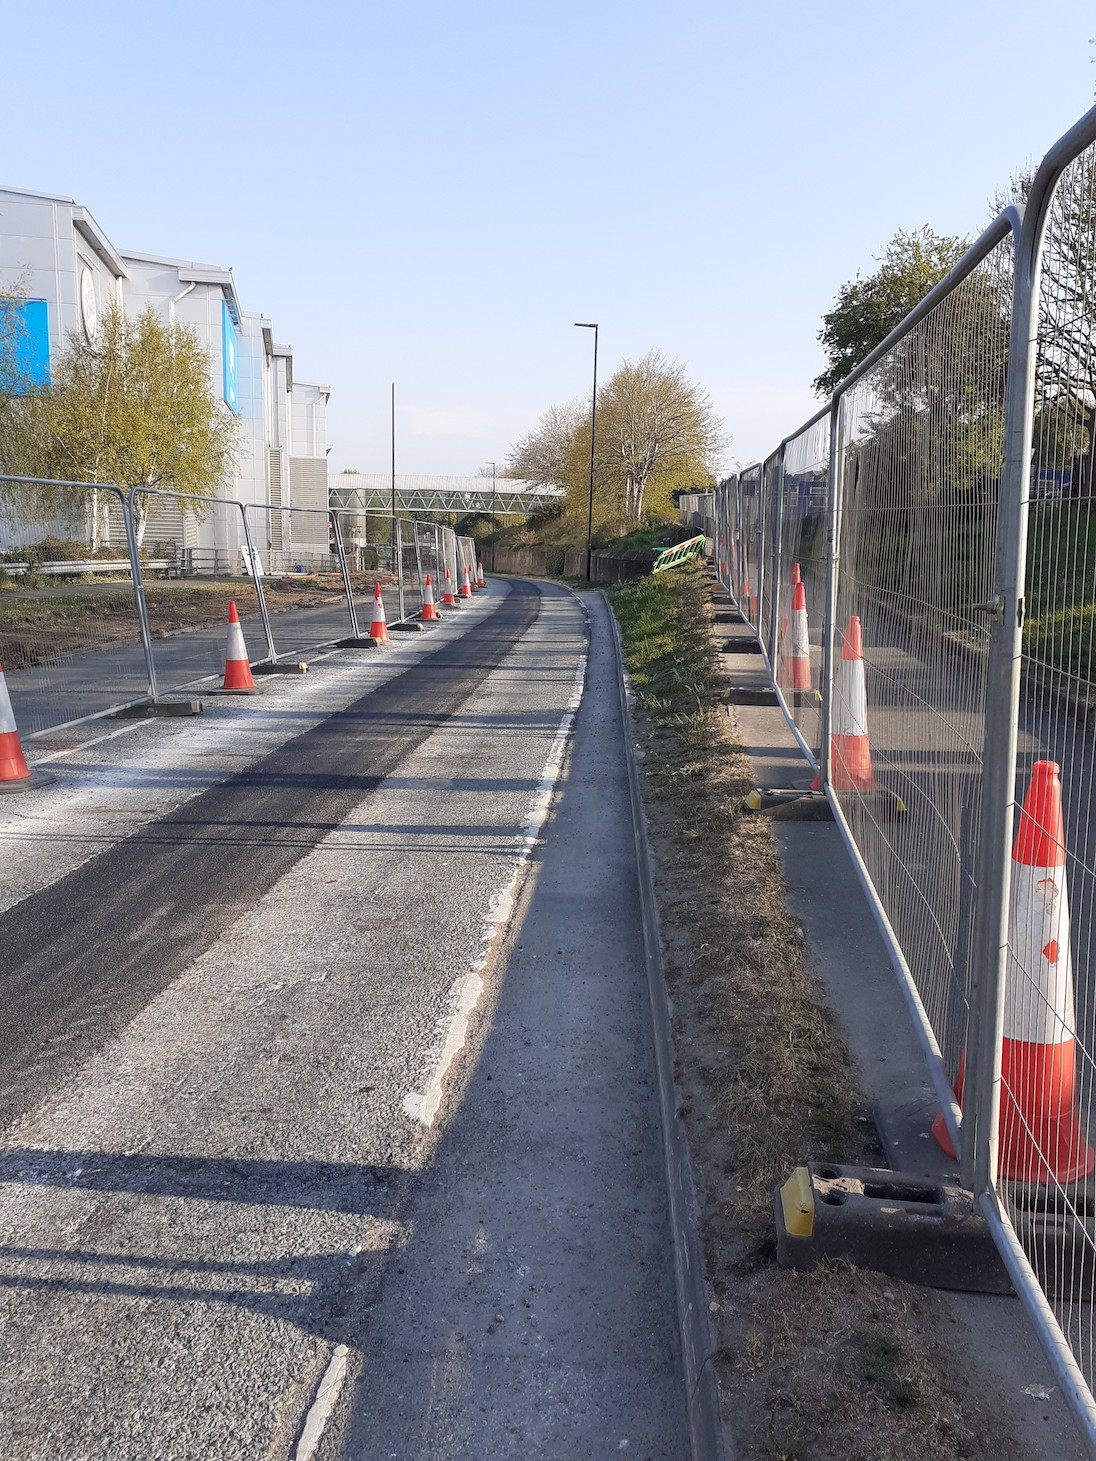 road with fencing on either side and traffic cones, surface of the road showing work underway